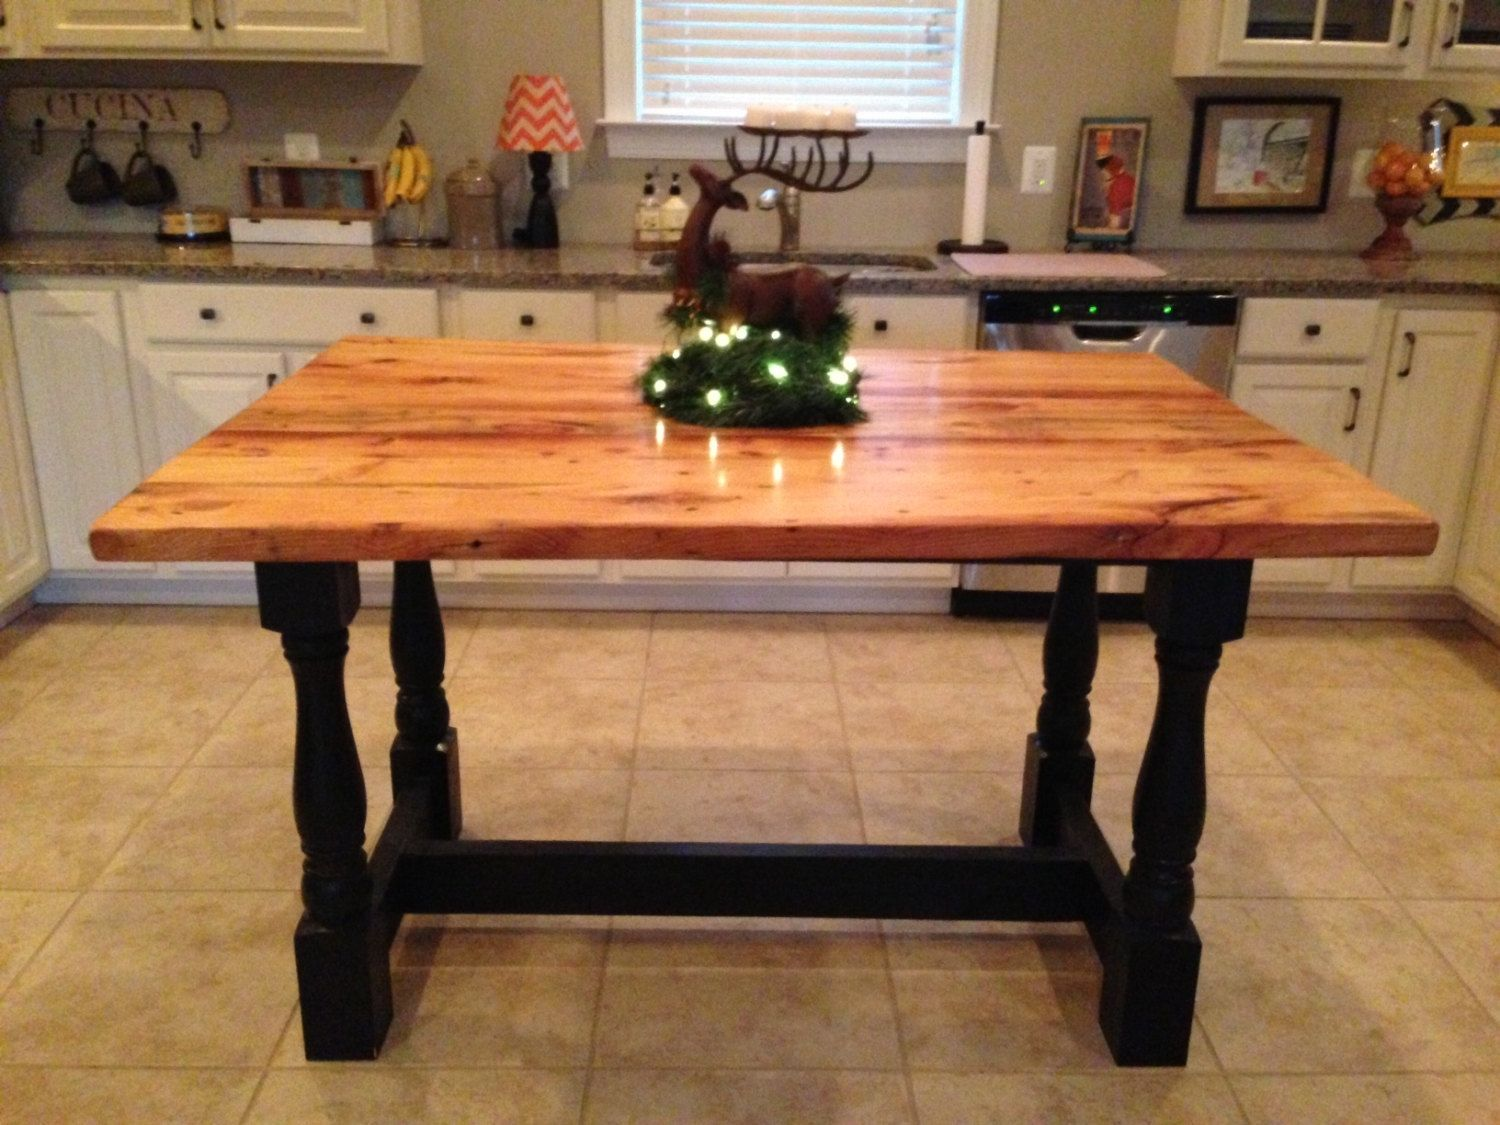 Buy A Hand Crafted Harvest Style Kitchen Island Made From Reclaimed Hardwood With Turned Legs